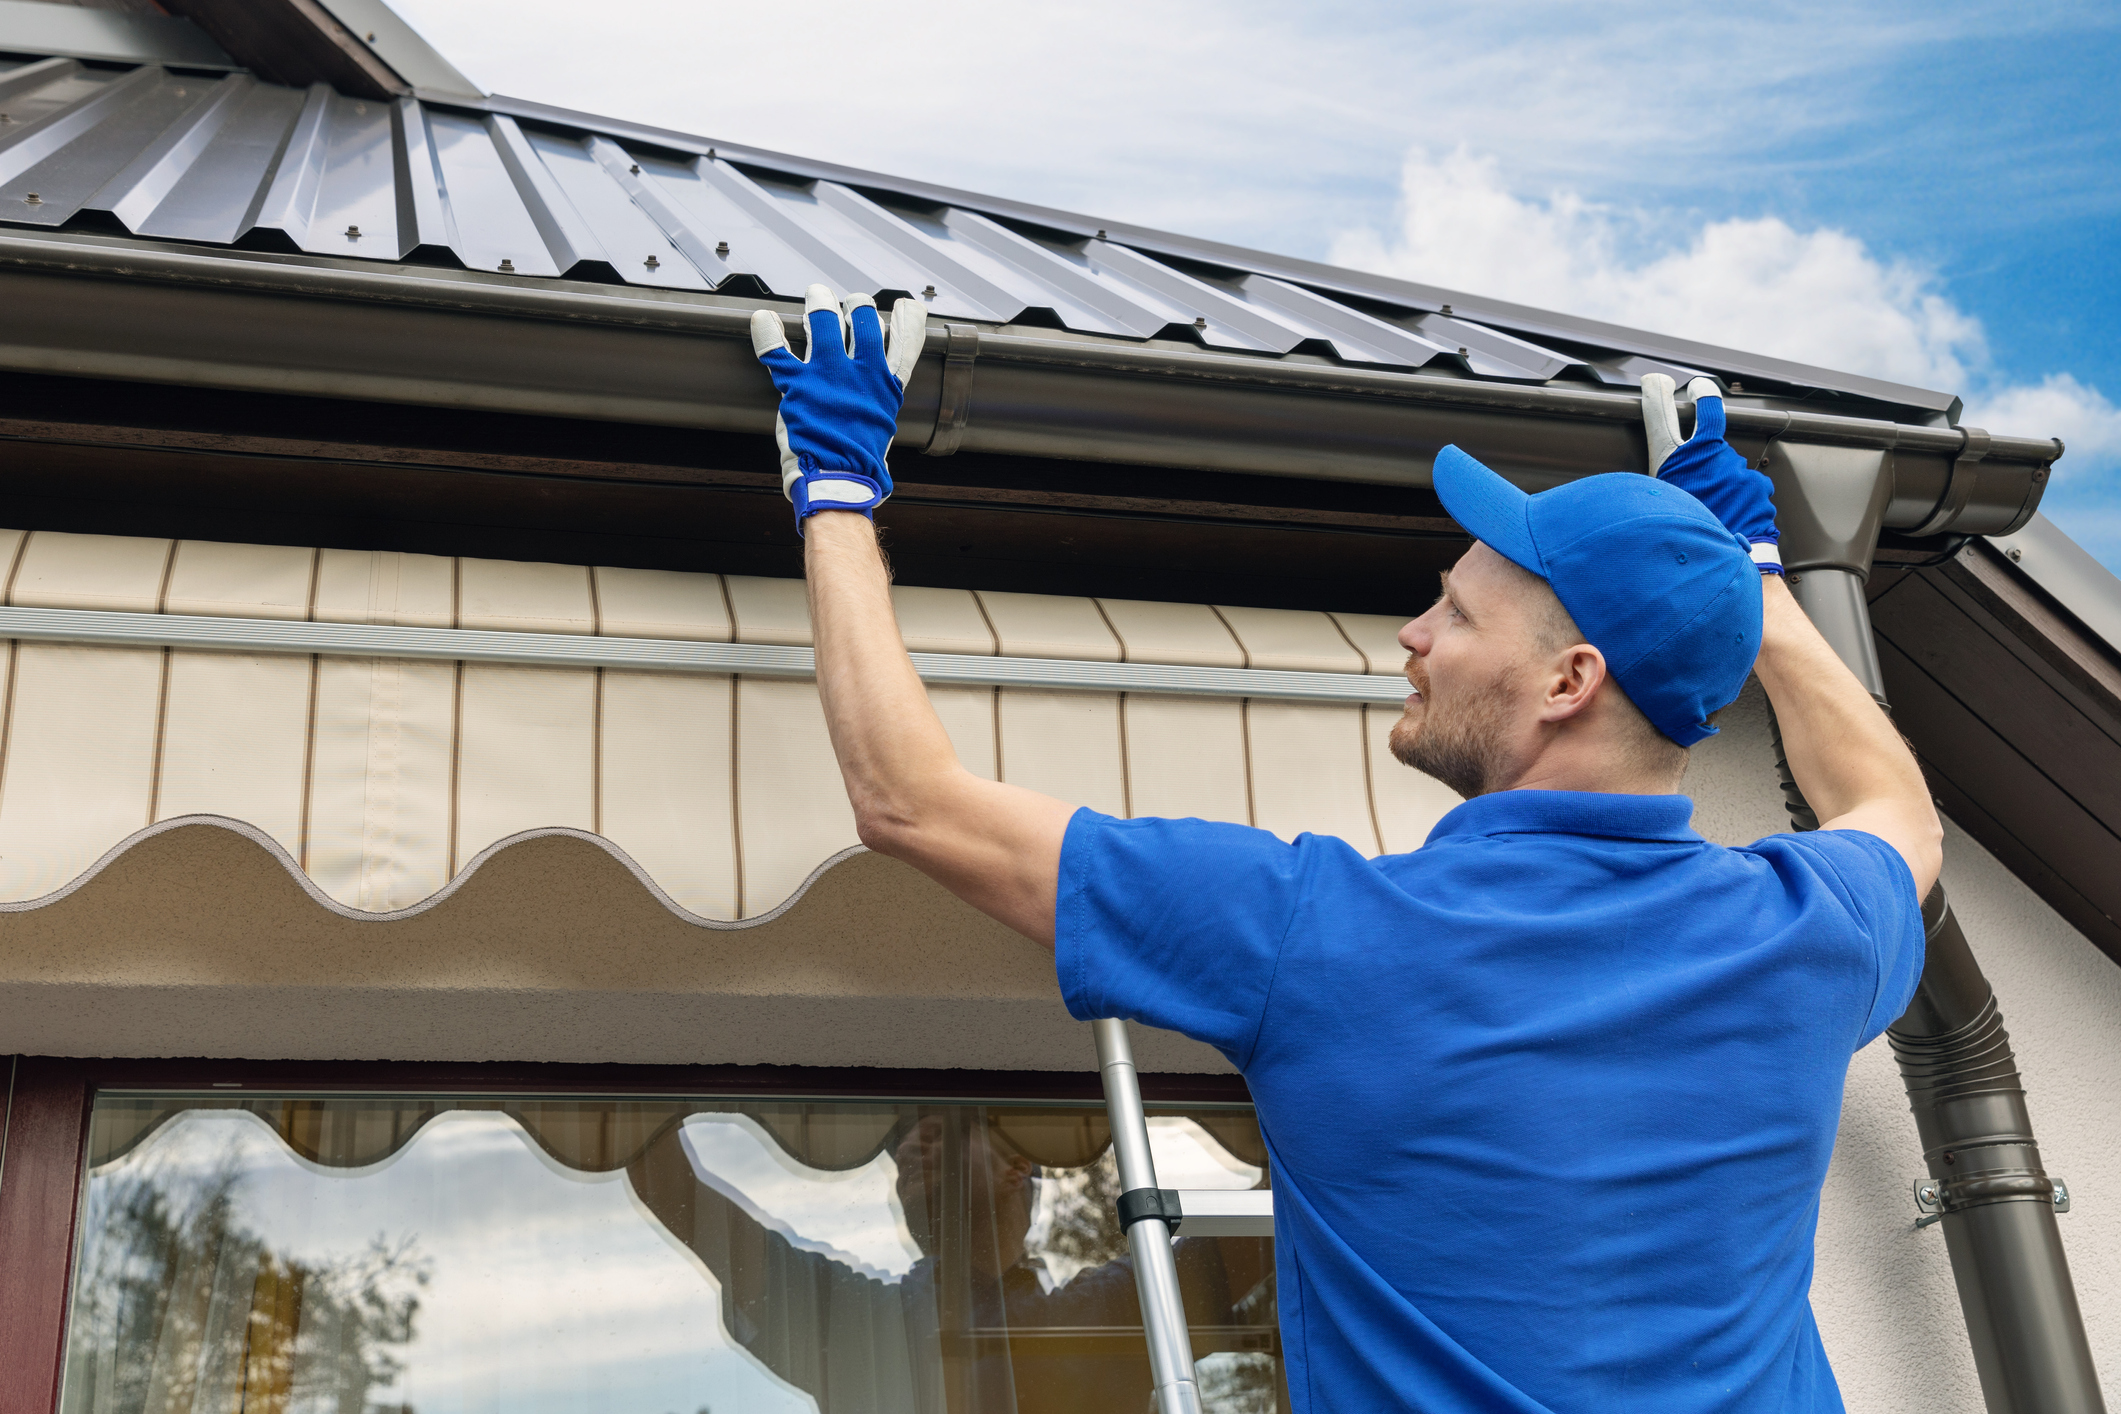 man in blue shirt and hat fixing gutters on the side of a house